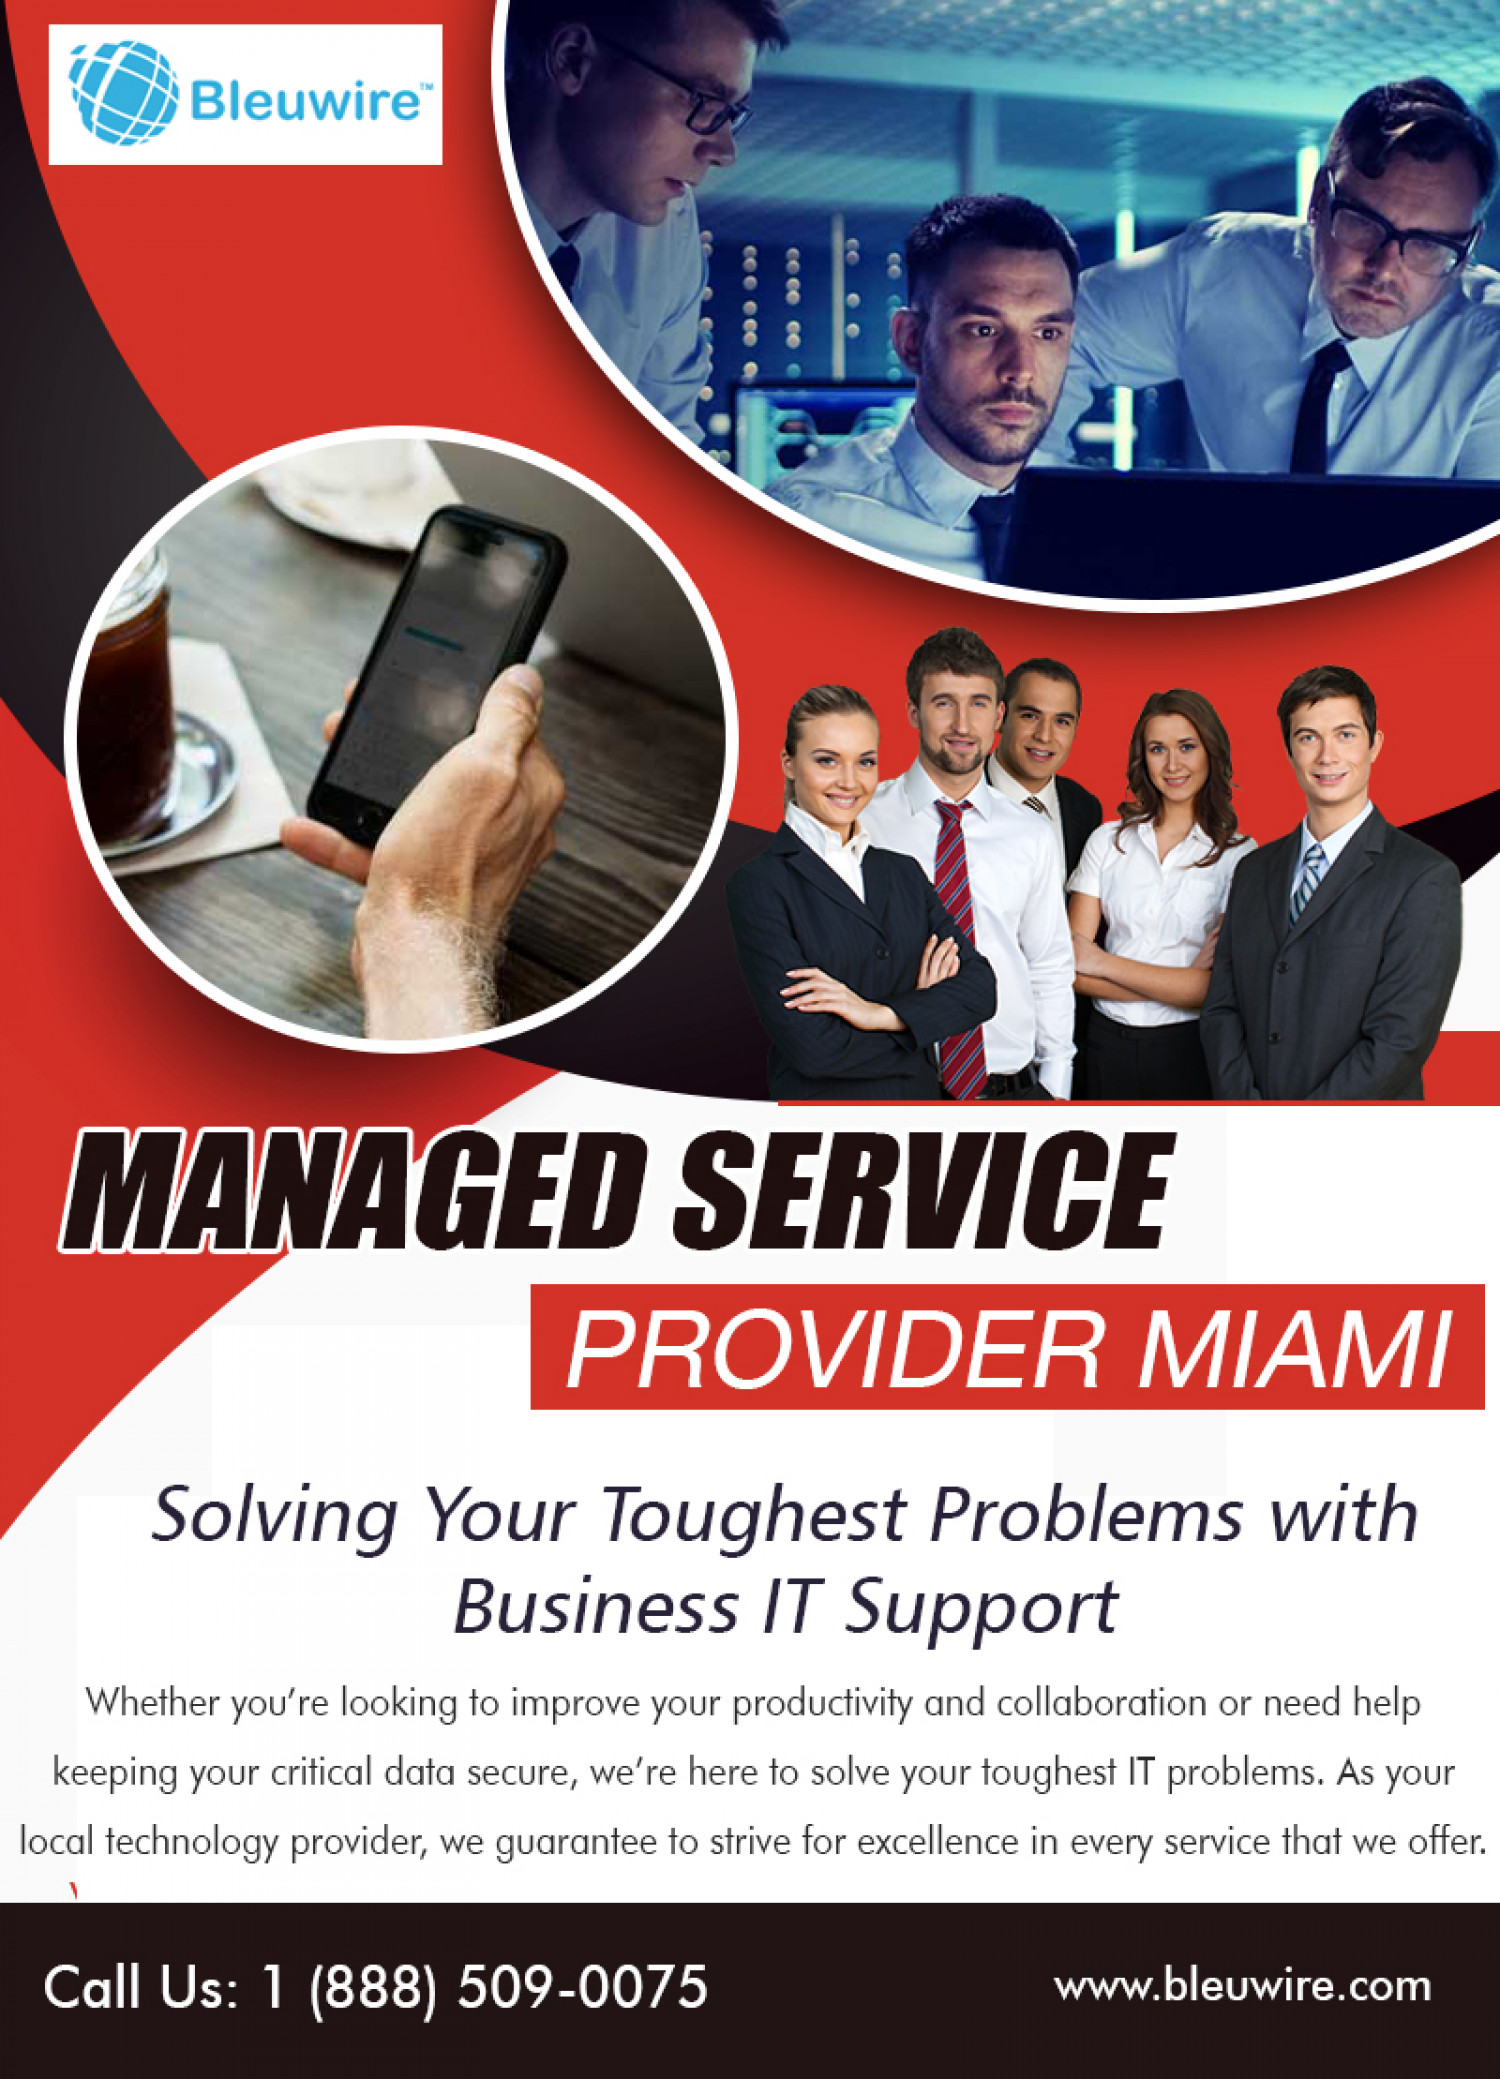 Managed Service Provider Miami | Call: 1-888-509-0075 | bleuwire.com Infographic